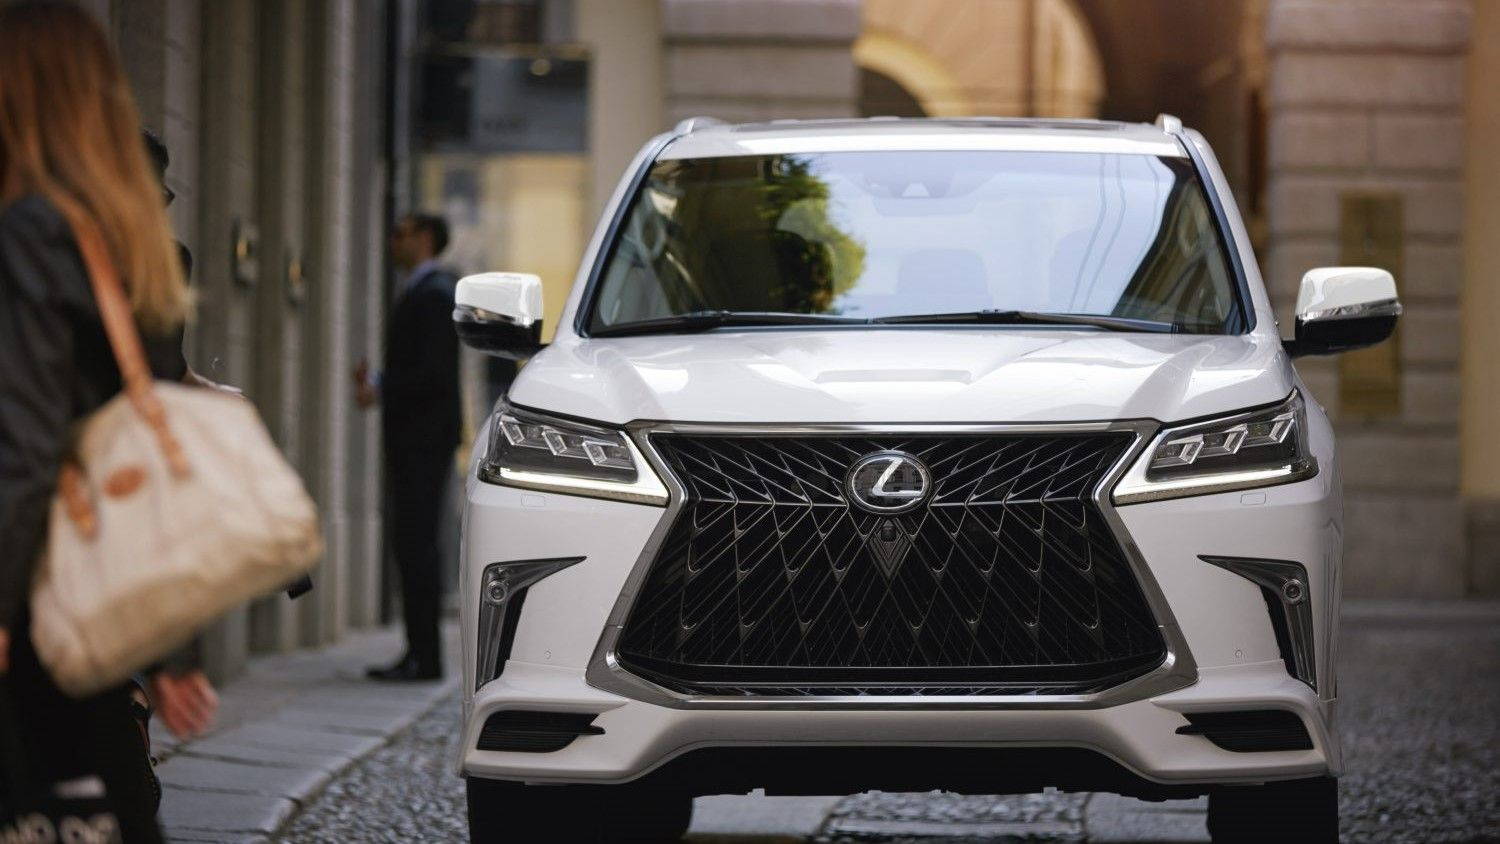 2021 lexus lx 570 review trims packages towing capacity features performance and rivals 2021 lexus lx 570 review trims